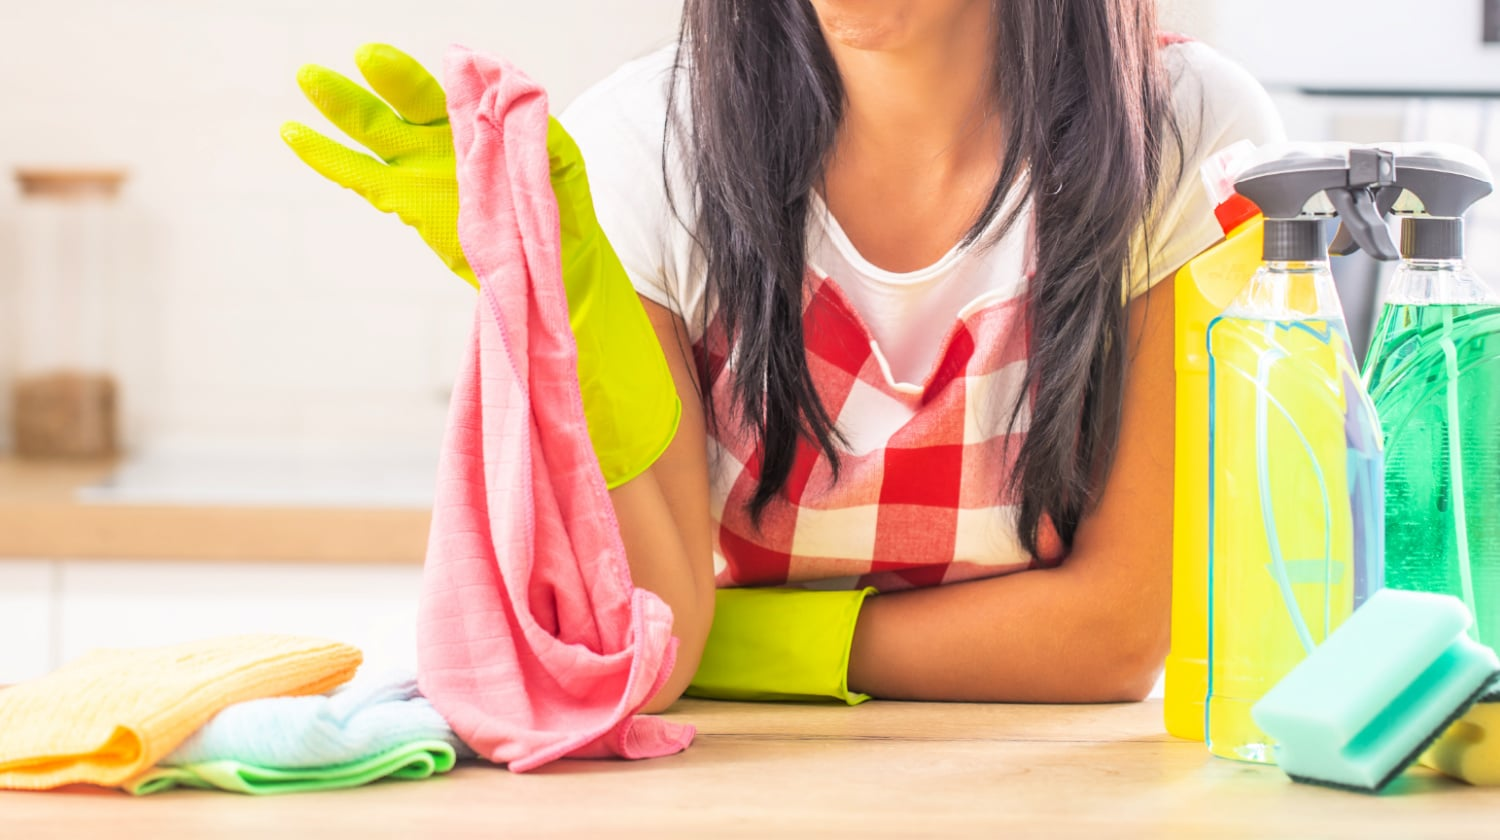 Woman leaning on counter and holding up a microfiber cloth